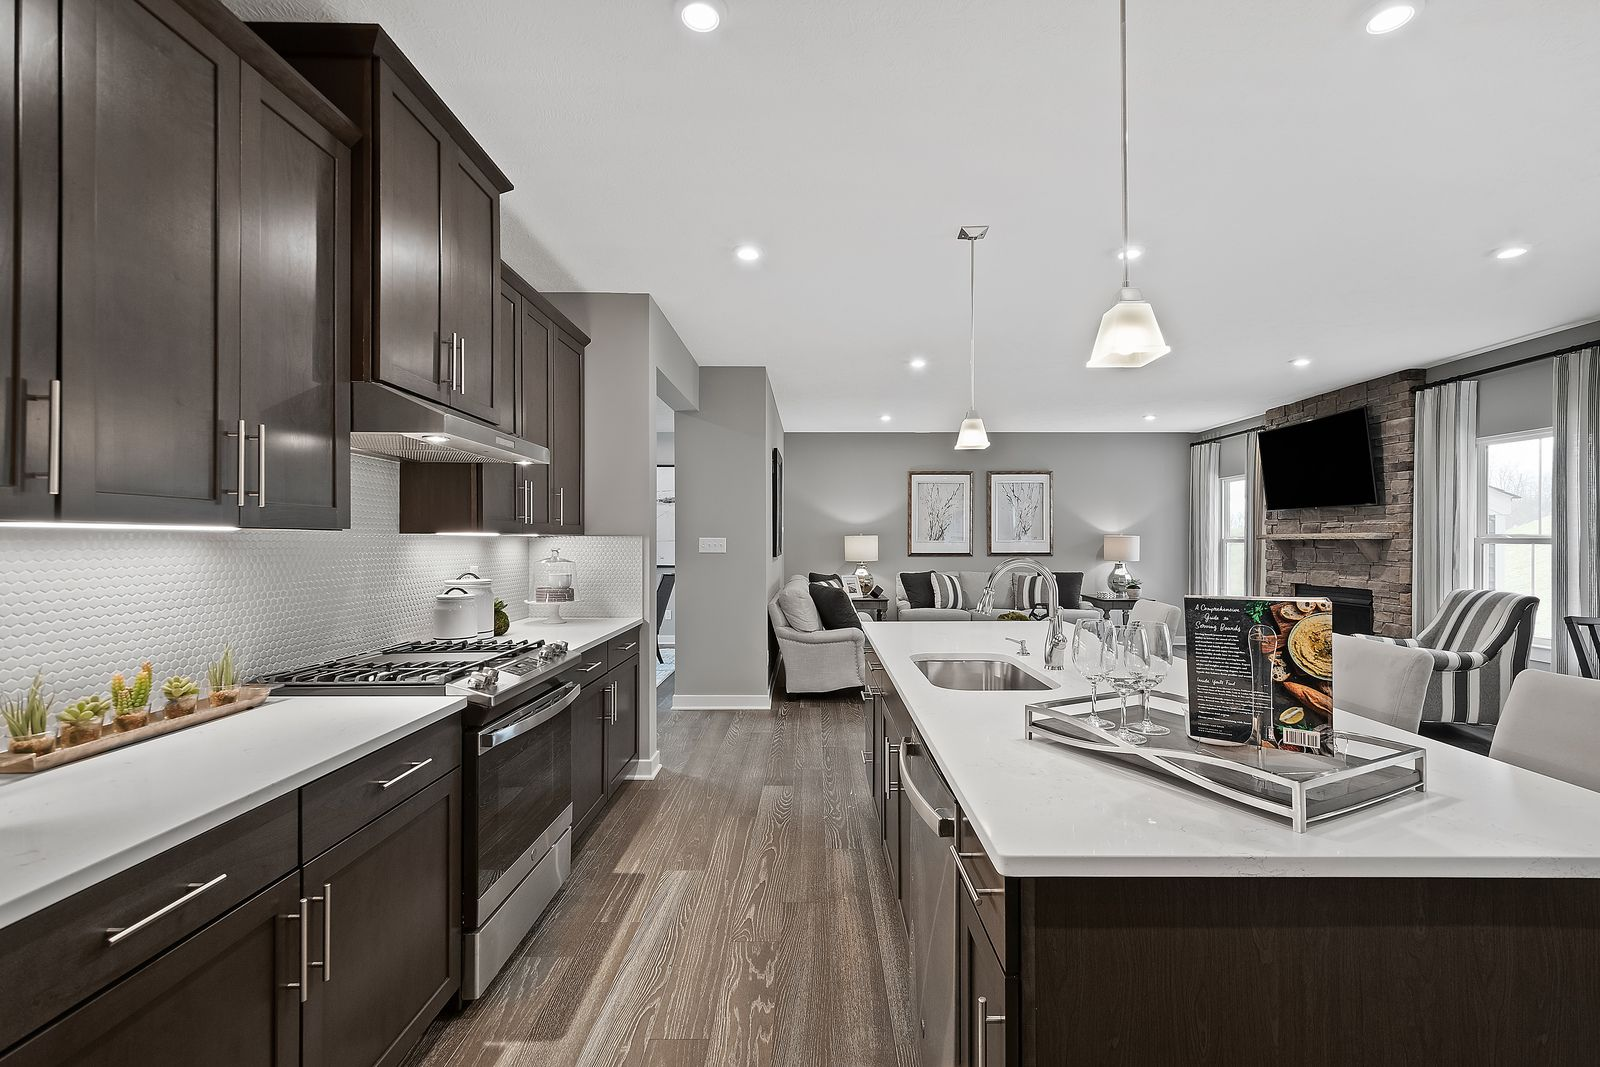 Kitchen featured in the Bear Run w/ Finished Lower Level By Ryan Homes in Dayton-Springfield, OH